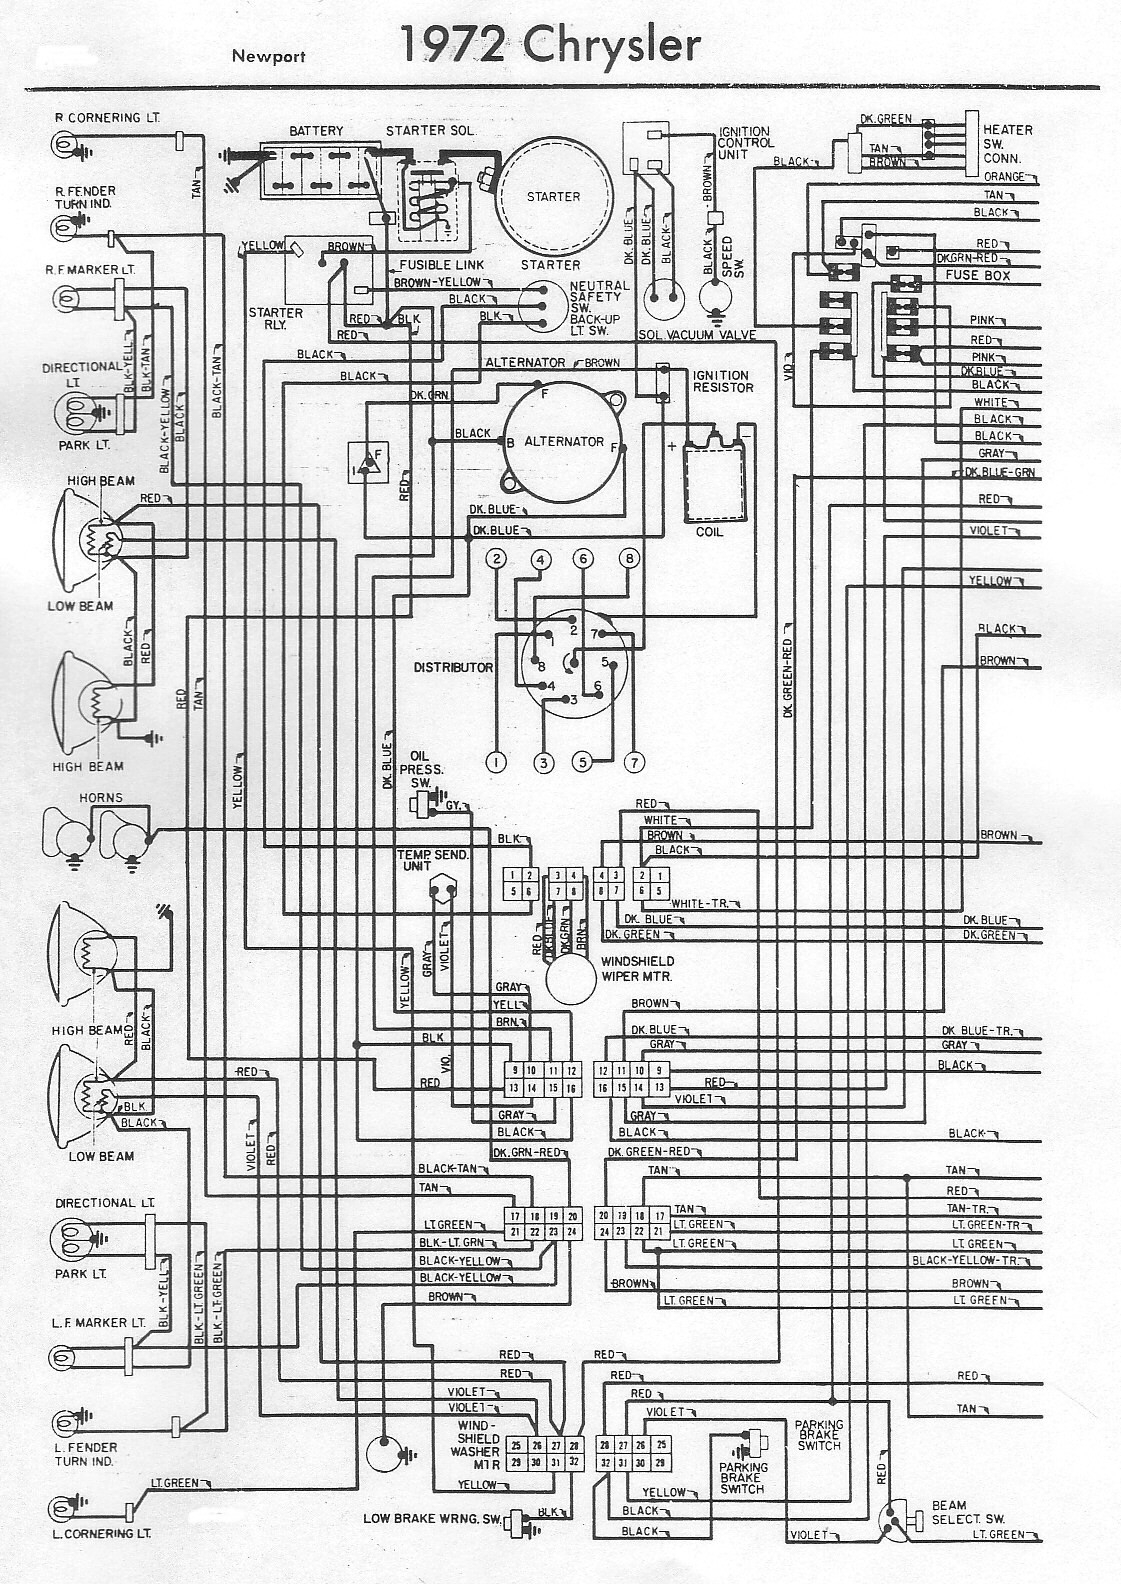 Chrysler Wiring Diagrams Mr Heater Thermostat Diagram 1972 Newport Electrical All